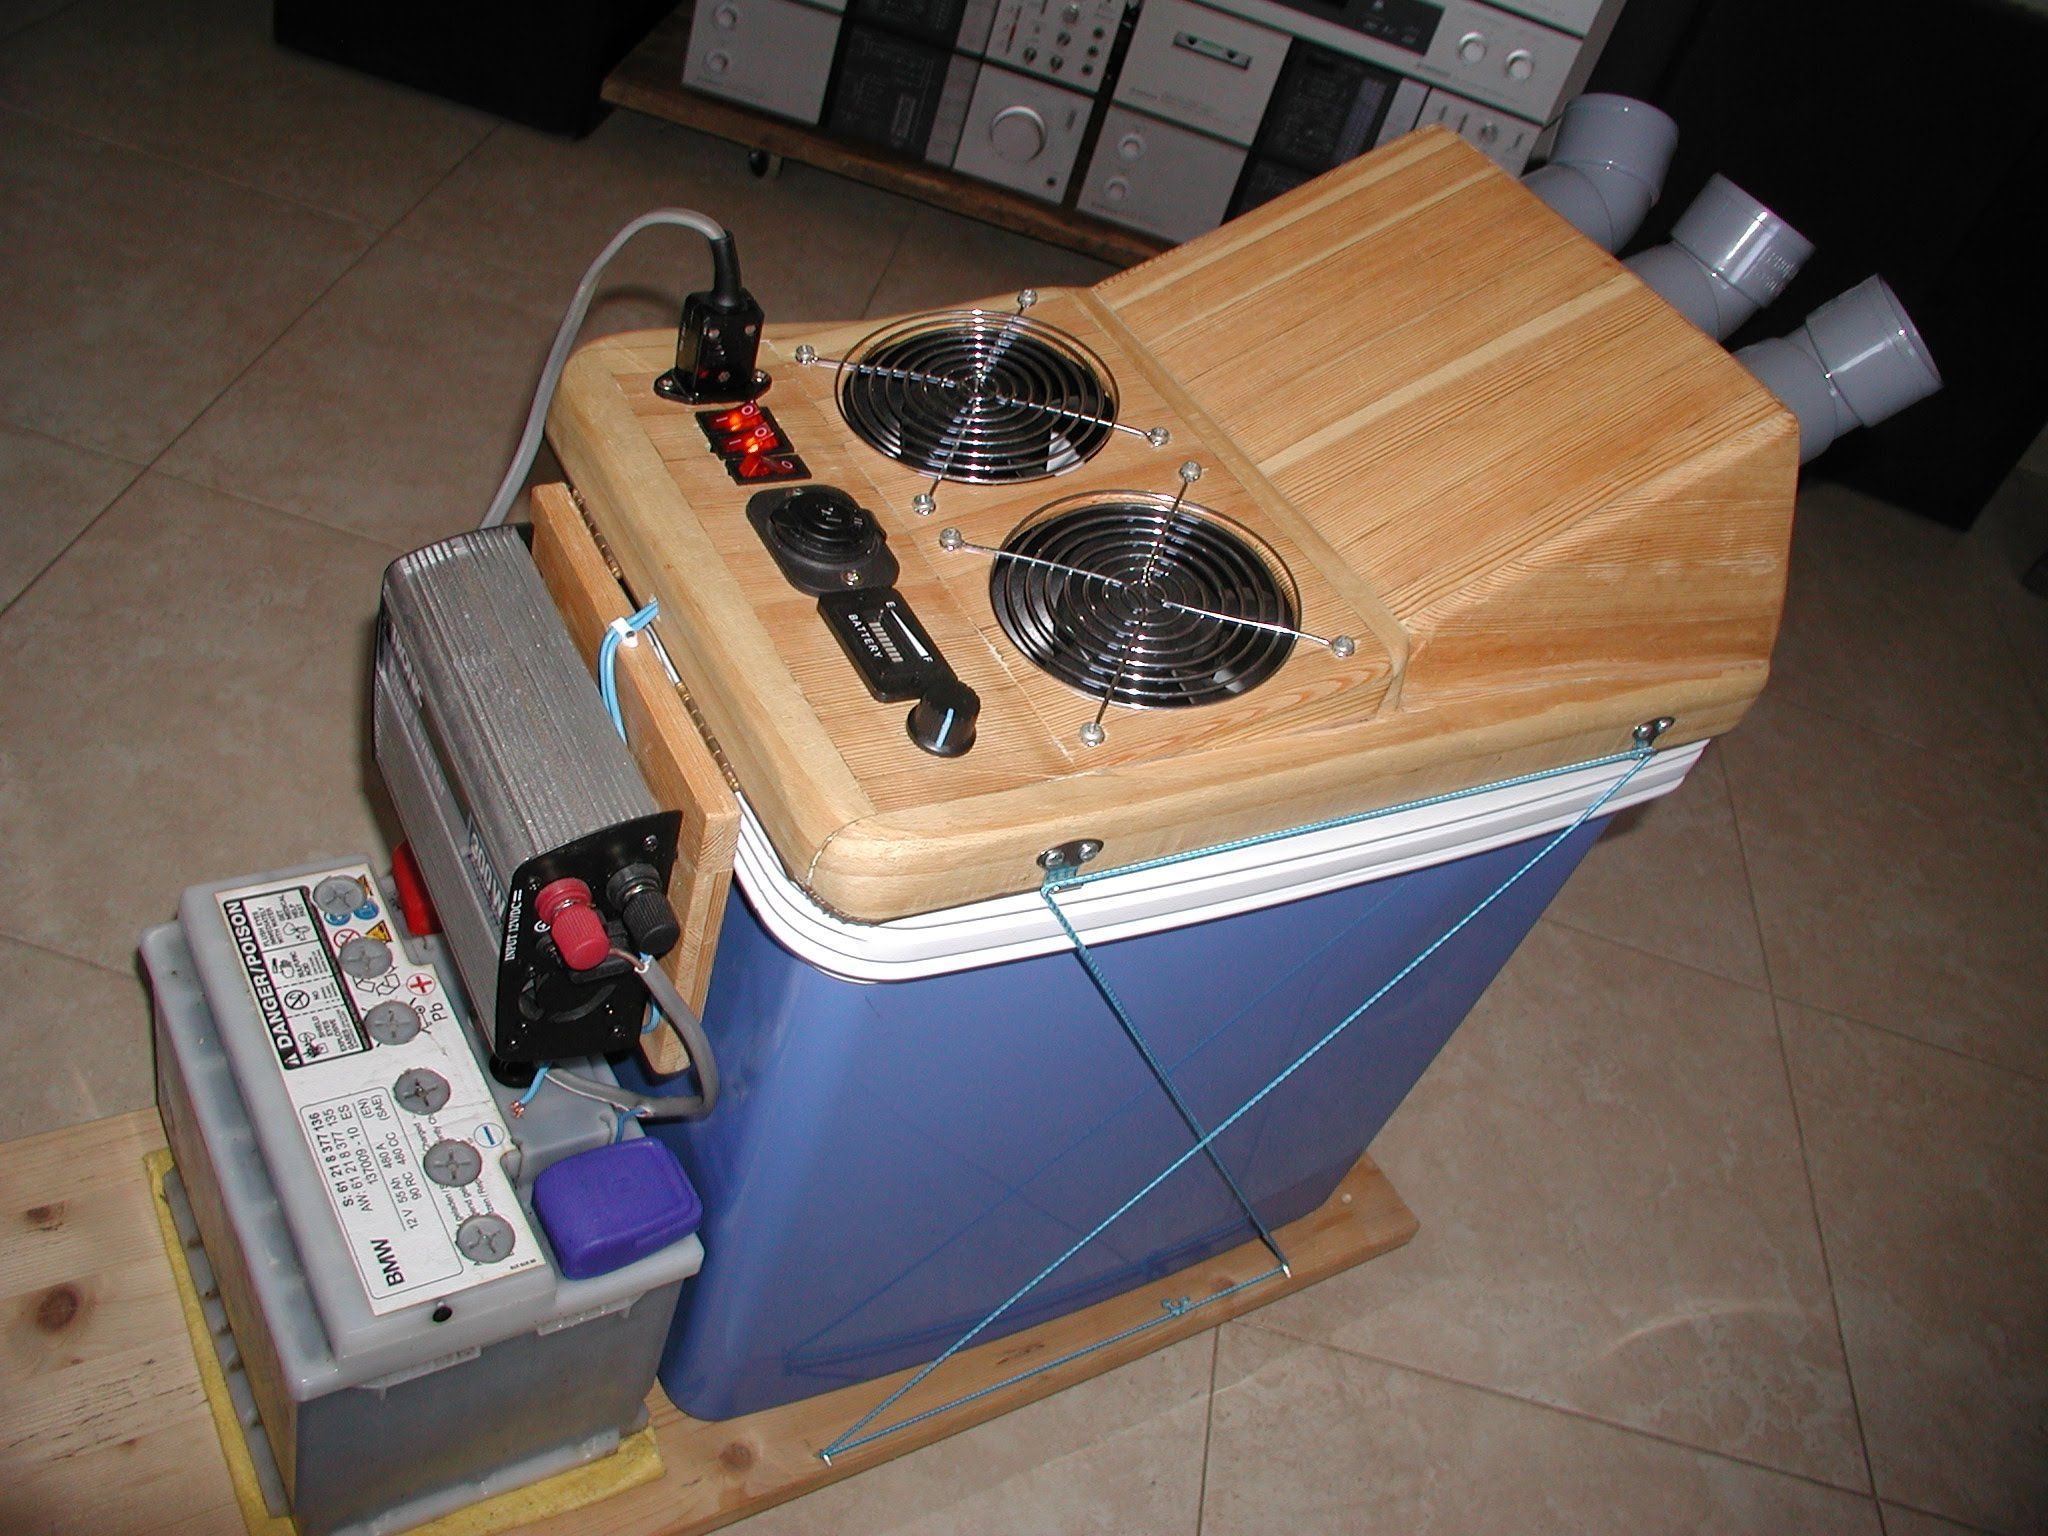 HOMEMADE DIY SOLAR POWERED AIR CONDITIONER / COOLER 12v DC